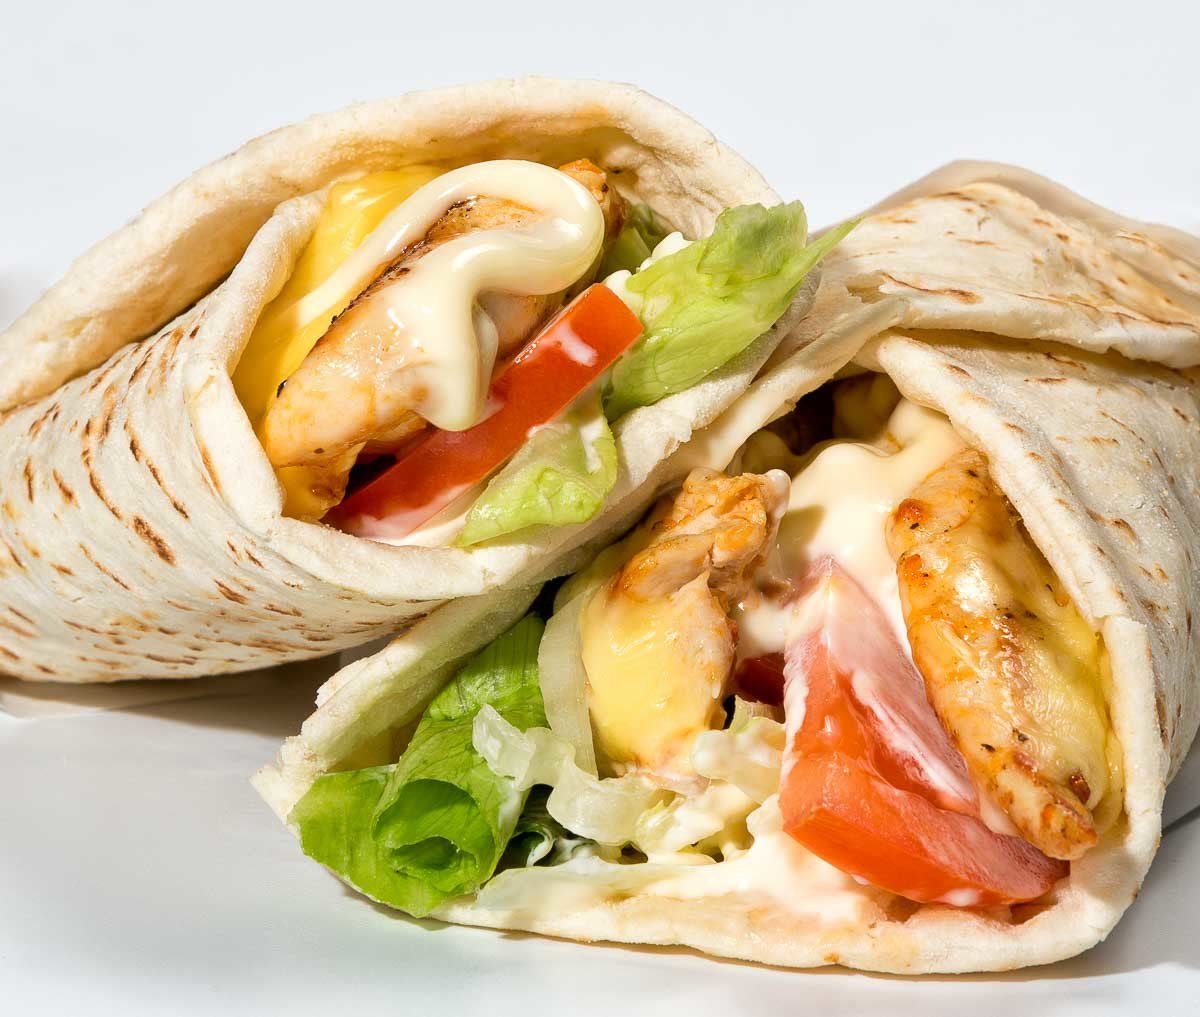 Chicken Wrap Closeup